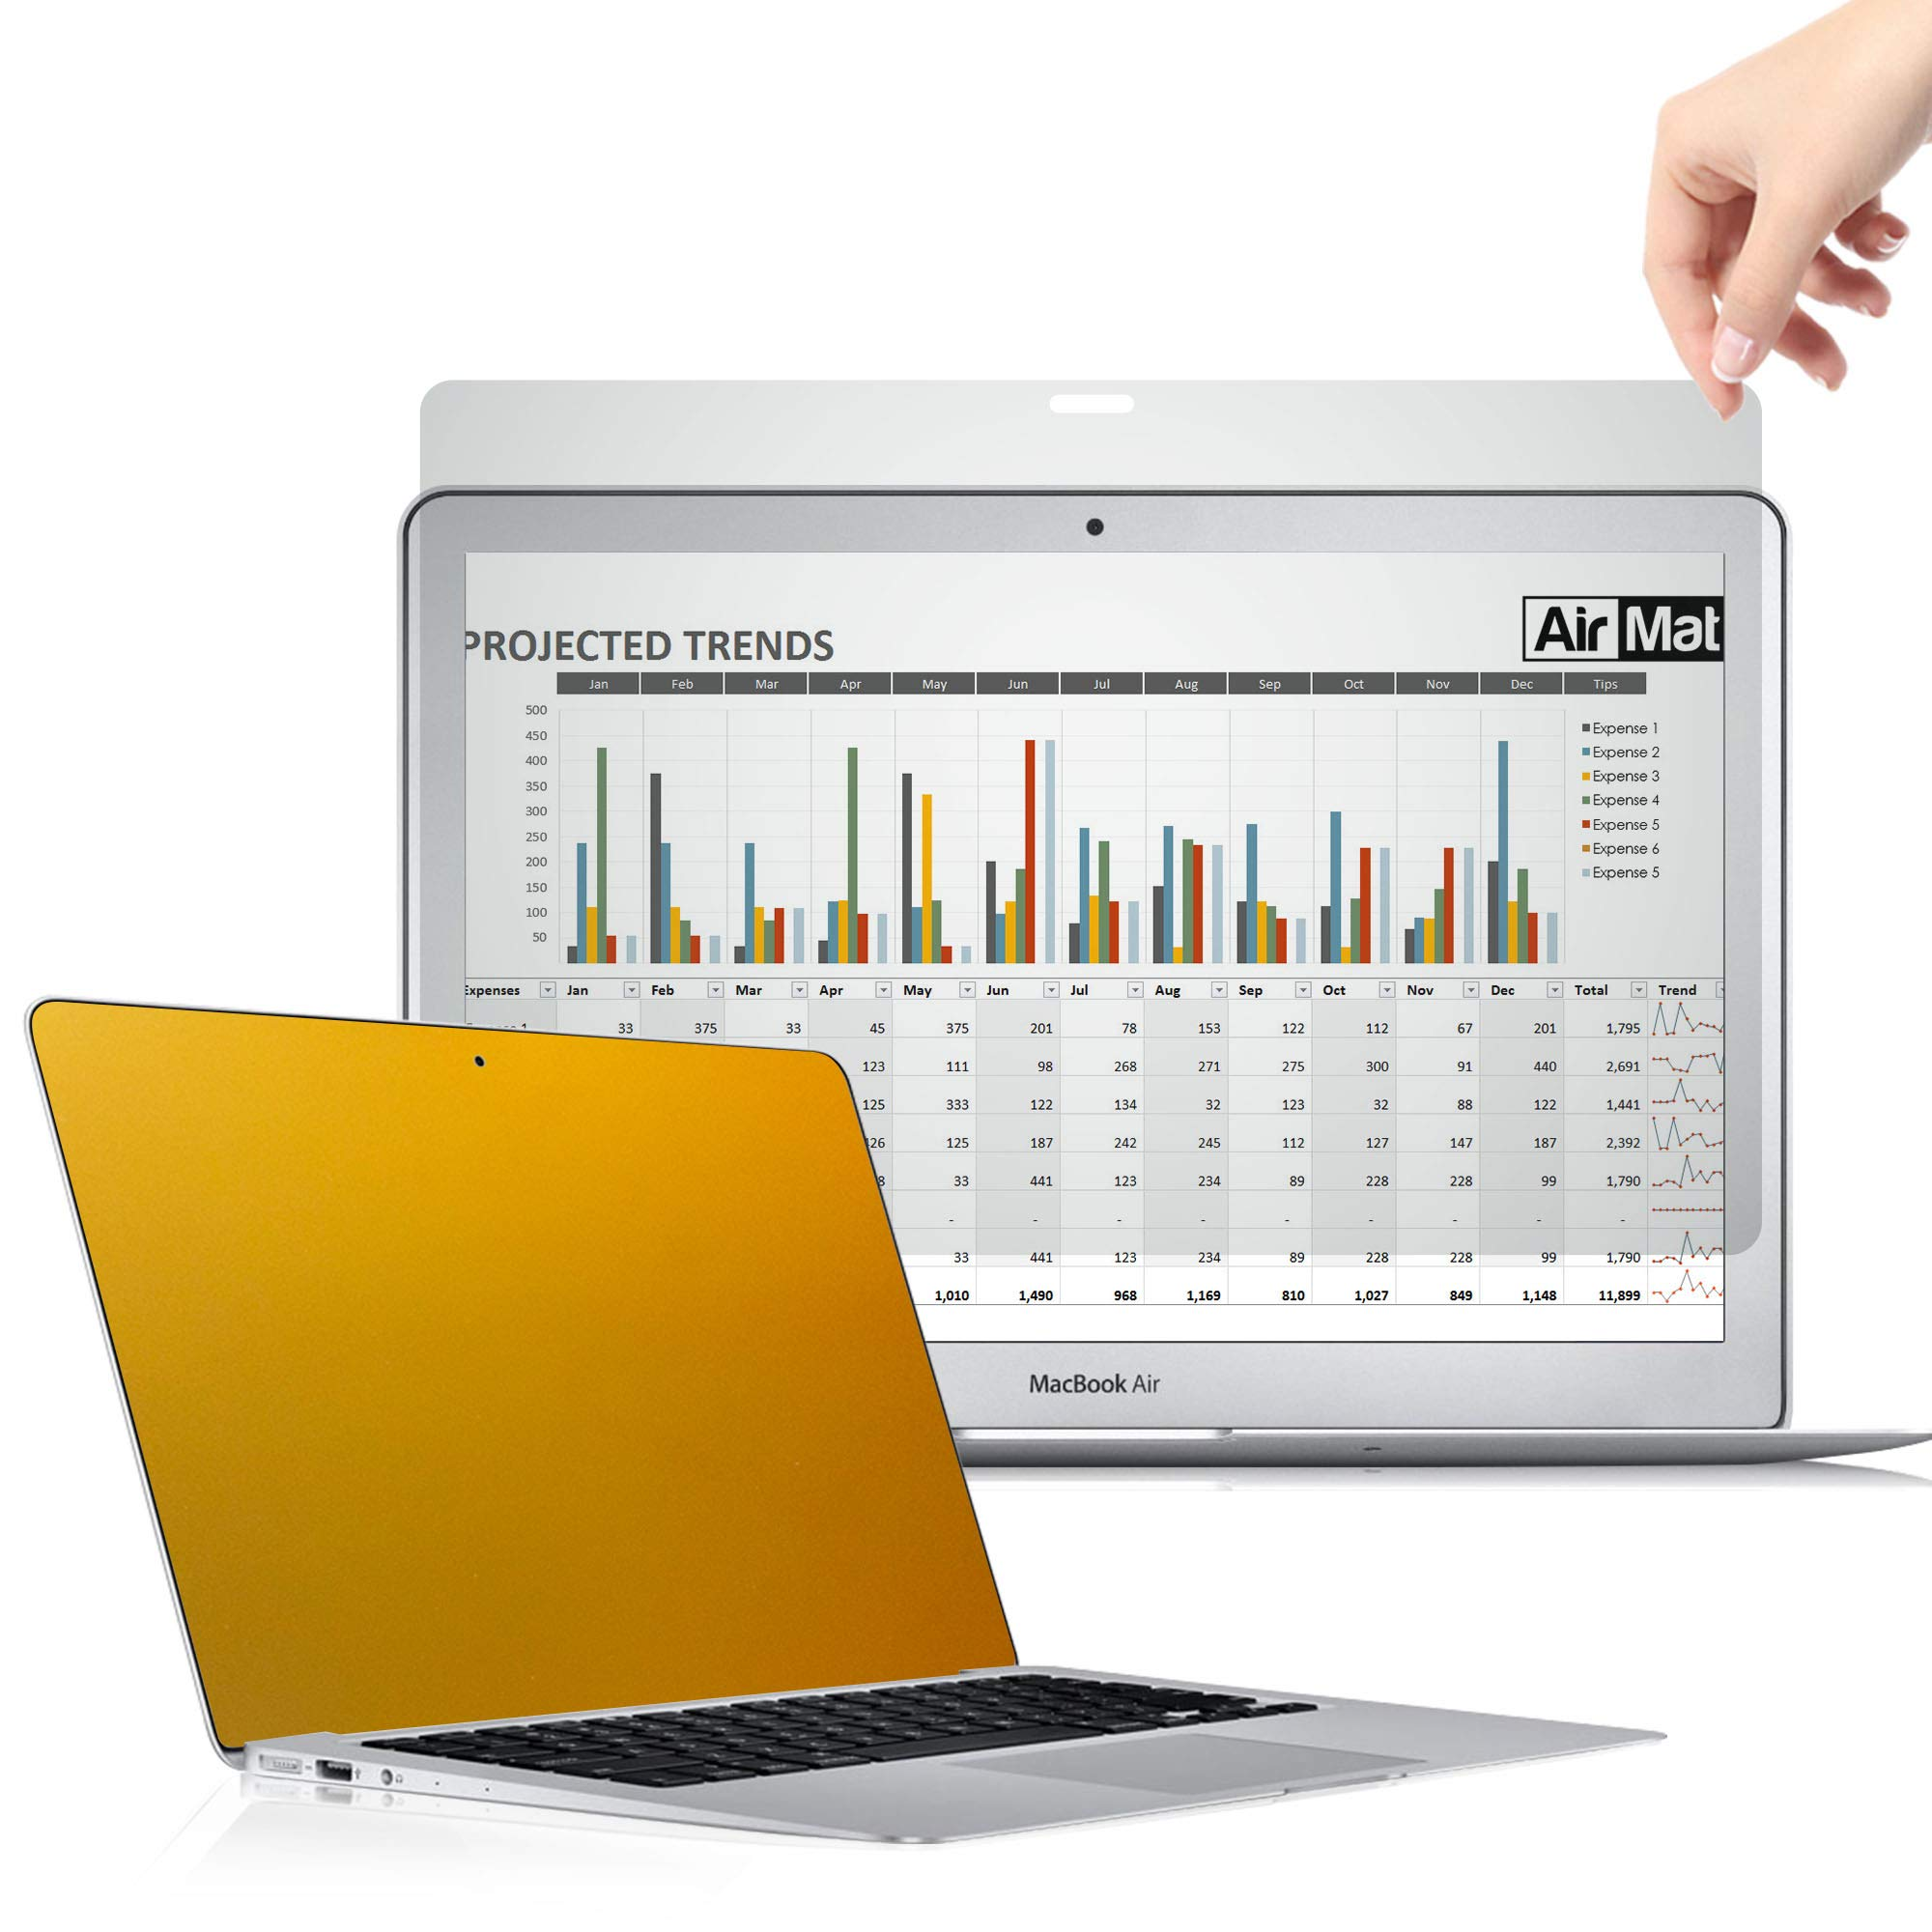 AirMat 13 Inch MacBook Pro Touch Bar Gold Privacy Screen Filter for Model A1708 / A1706 - Premium Anti Glare Protector